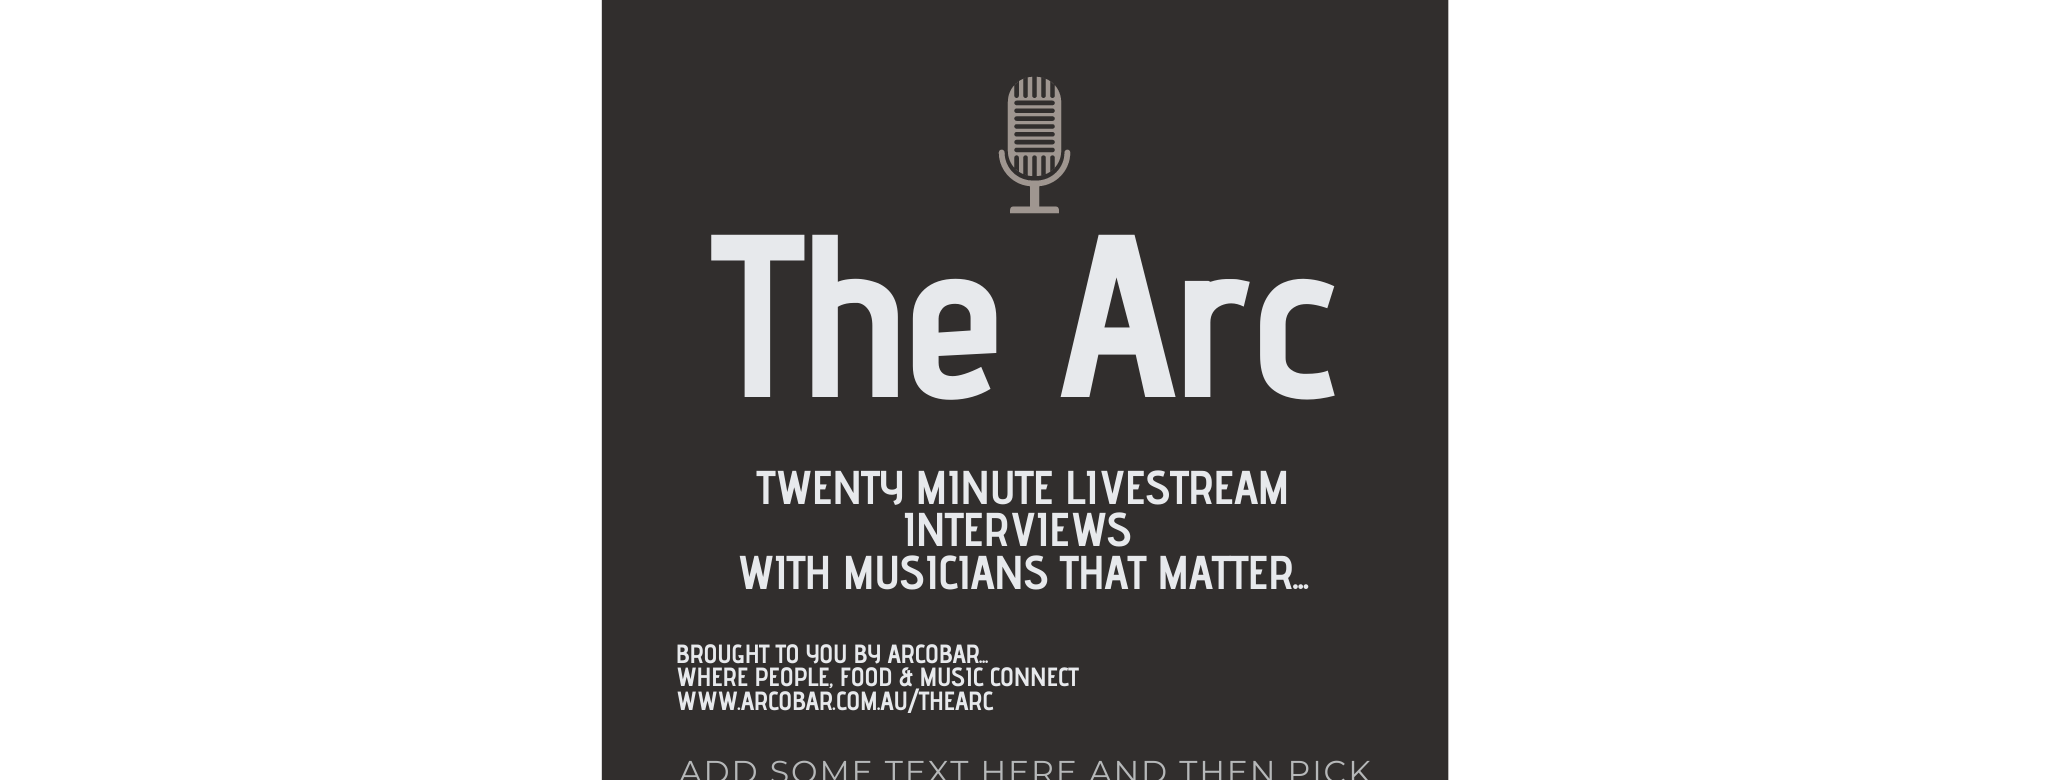 The Arc - 20 Minute Livestream Interviews With Great Musicians